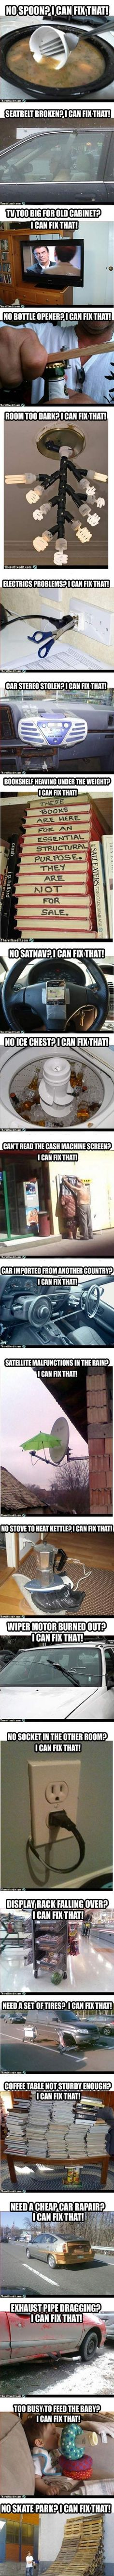 I can fix that... just laughed til I cried! haha